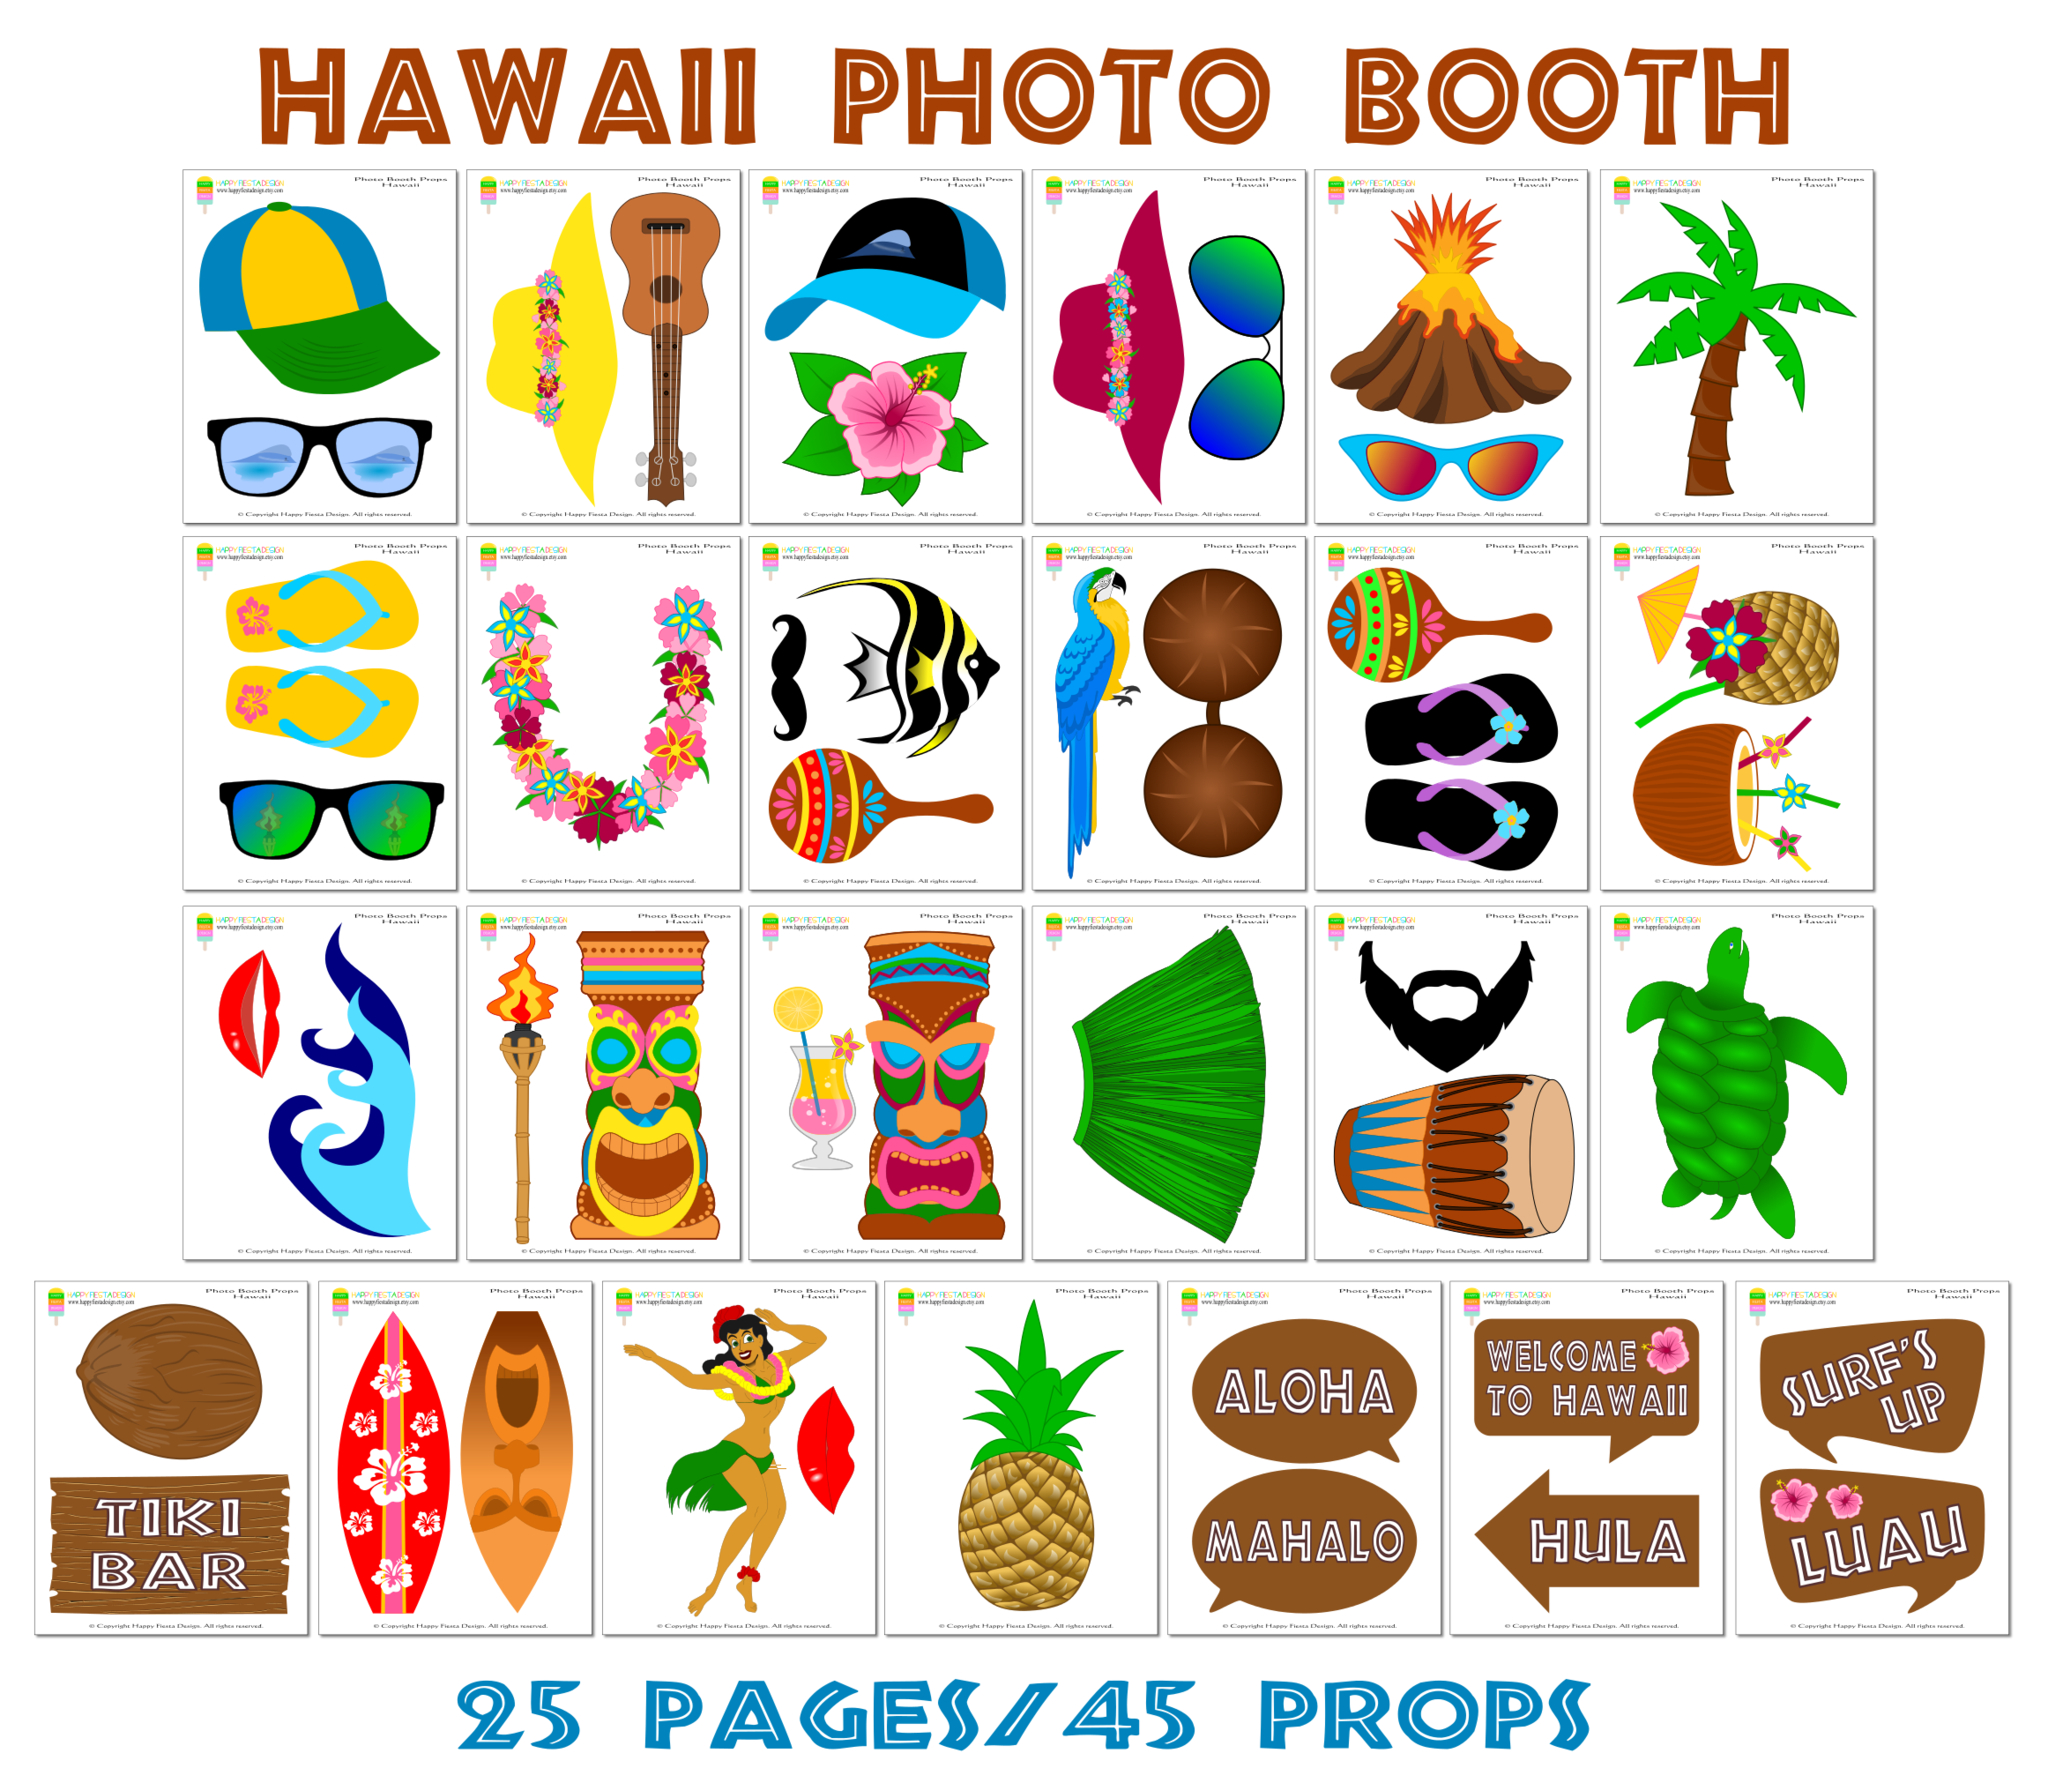 Printable Hawaii Photo Booth Props/ Luau Party Photo Props - Hawaiian Photo Booth Props Printable Free